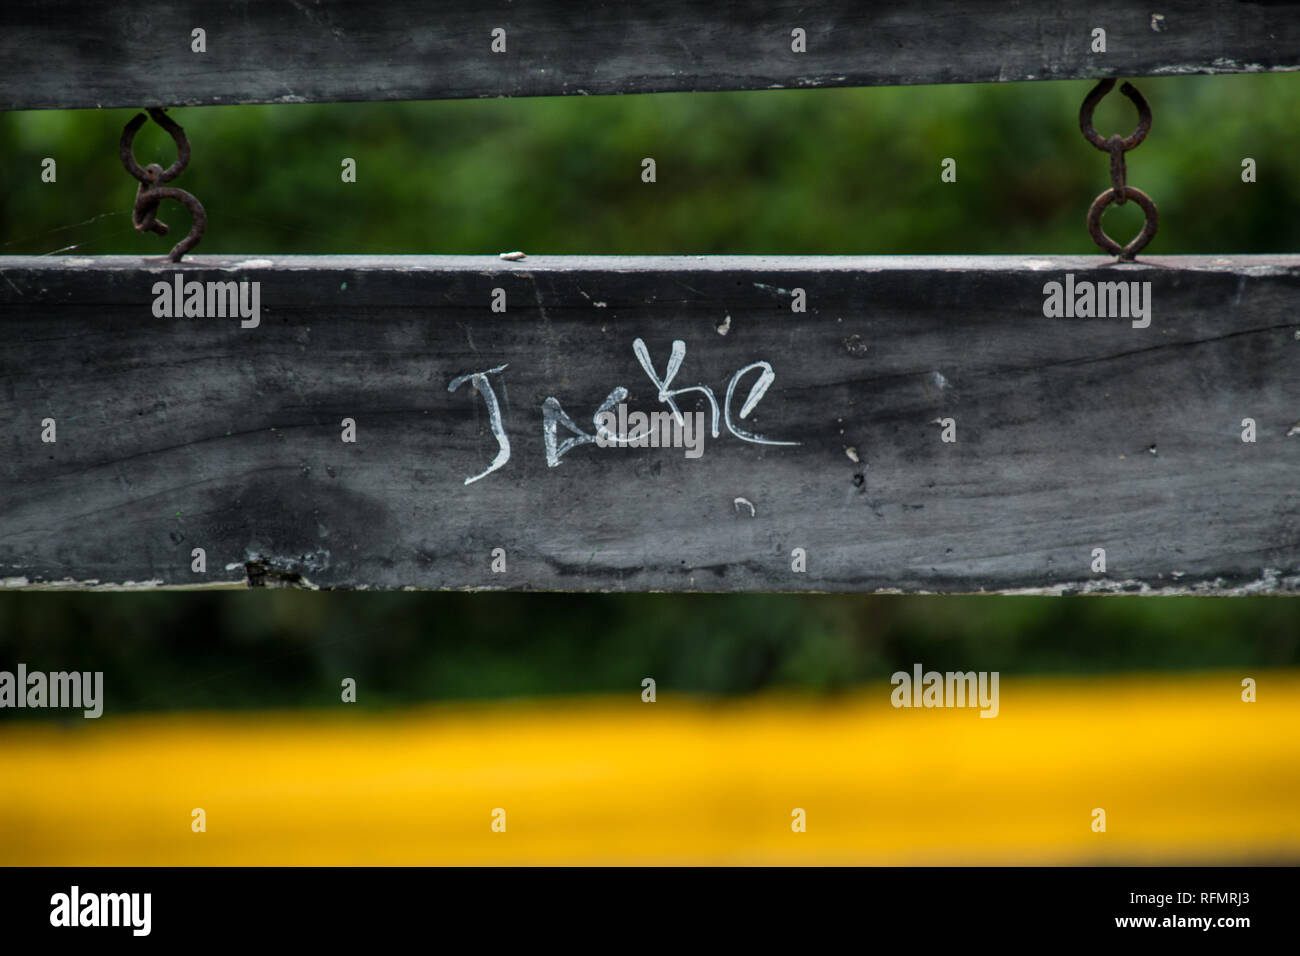 An old worn sign that has 'Jacke' written on it. Isolated on a blurred forest background. Yellow on the foreground - Stock Image